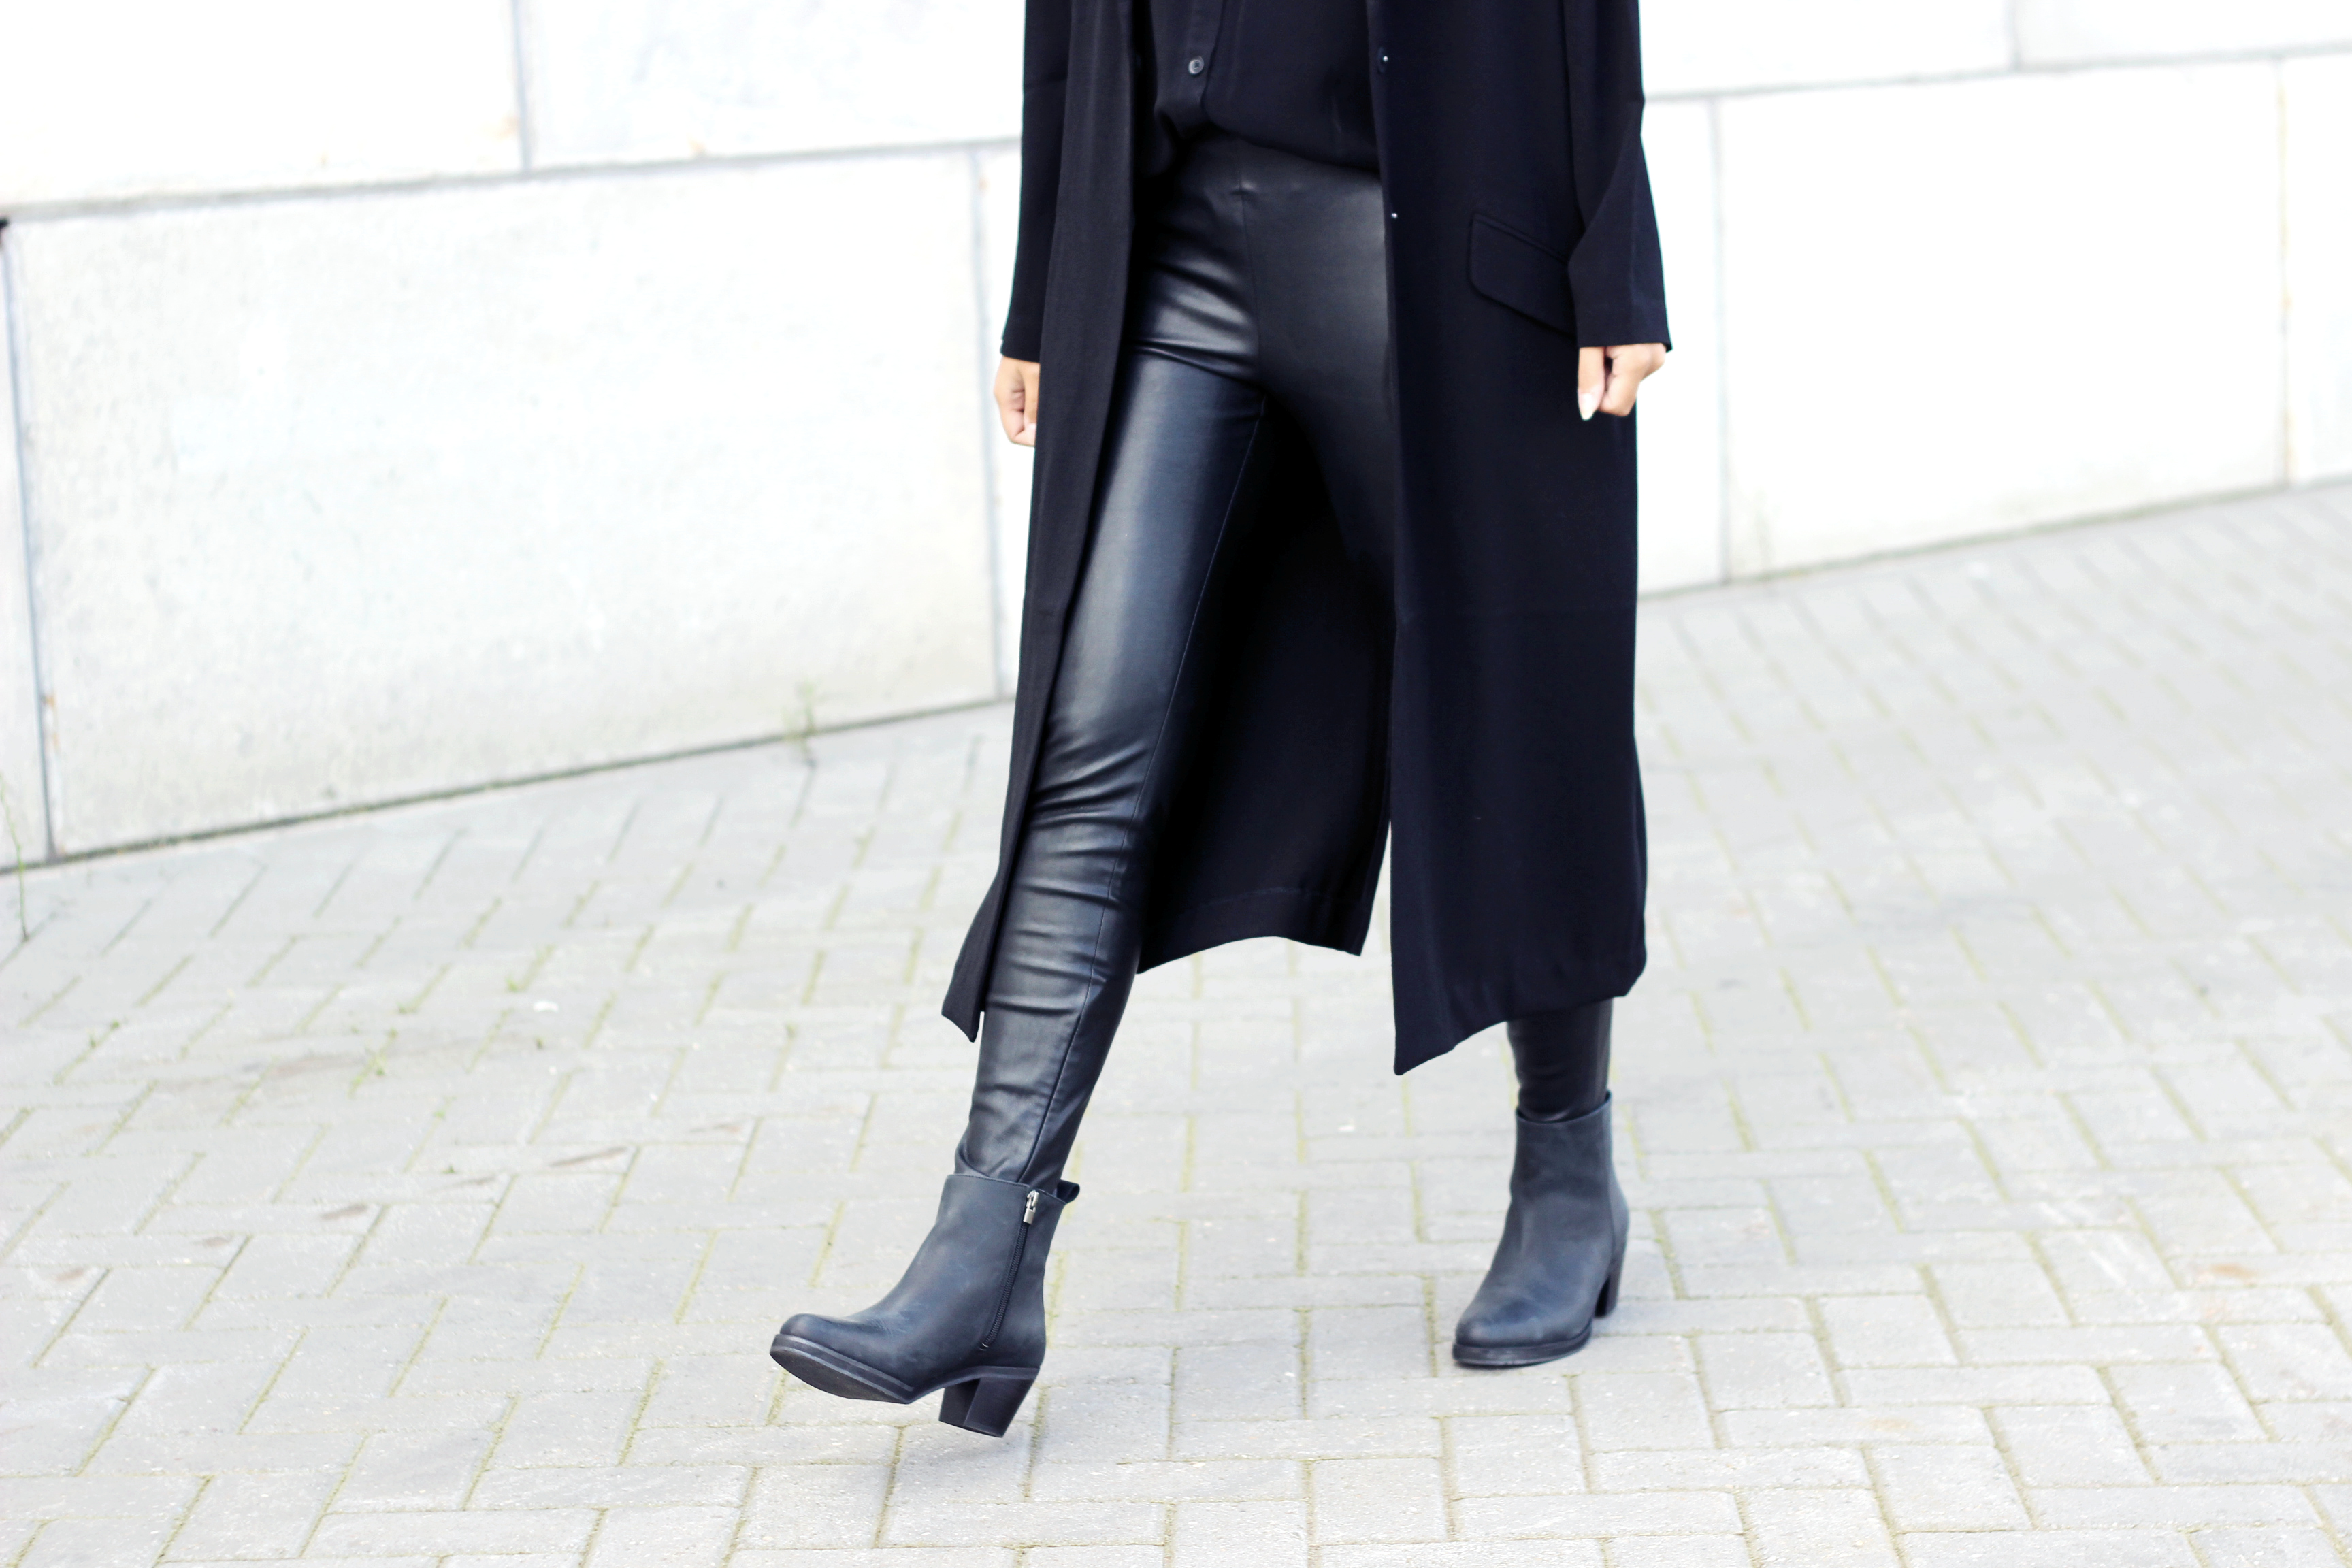 Acne pistol boots inspired black leather pants duster coat